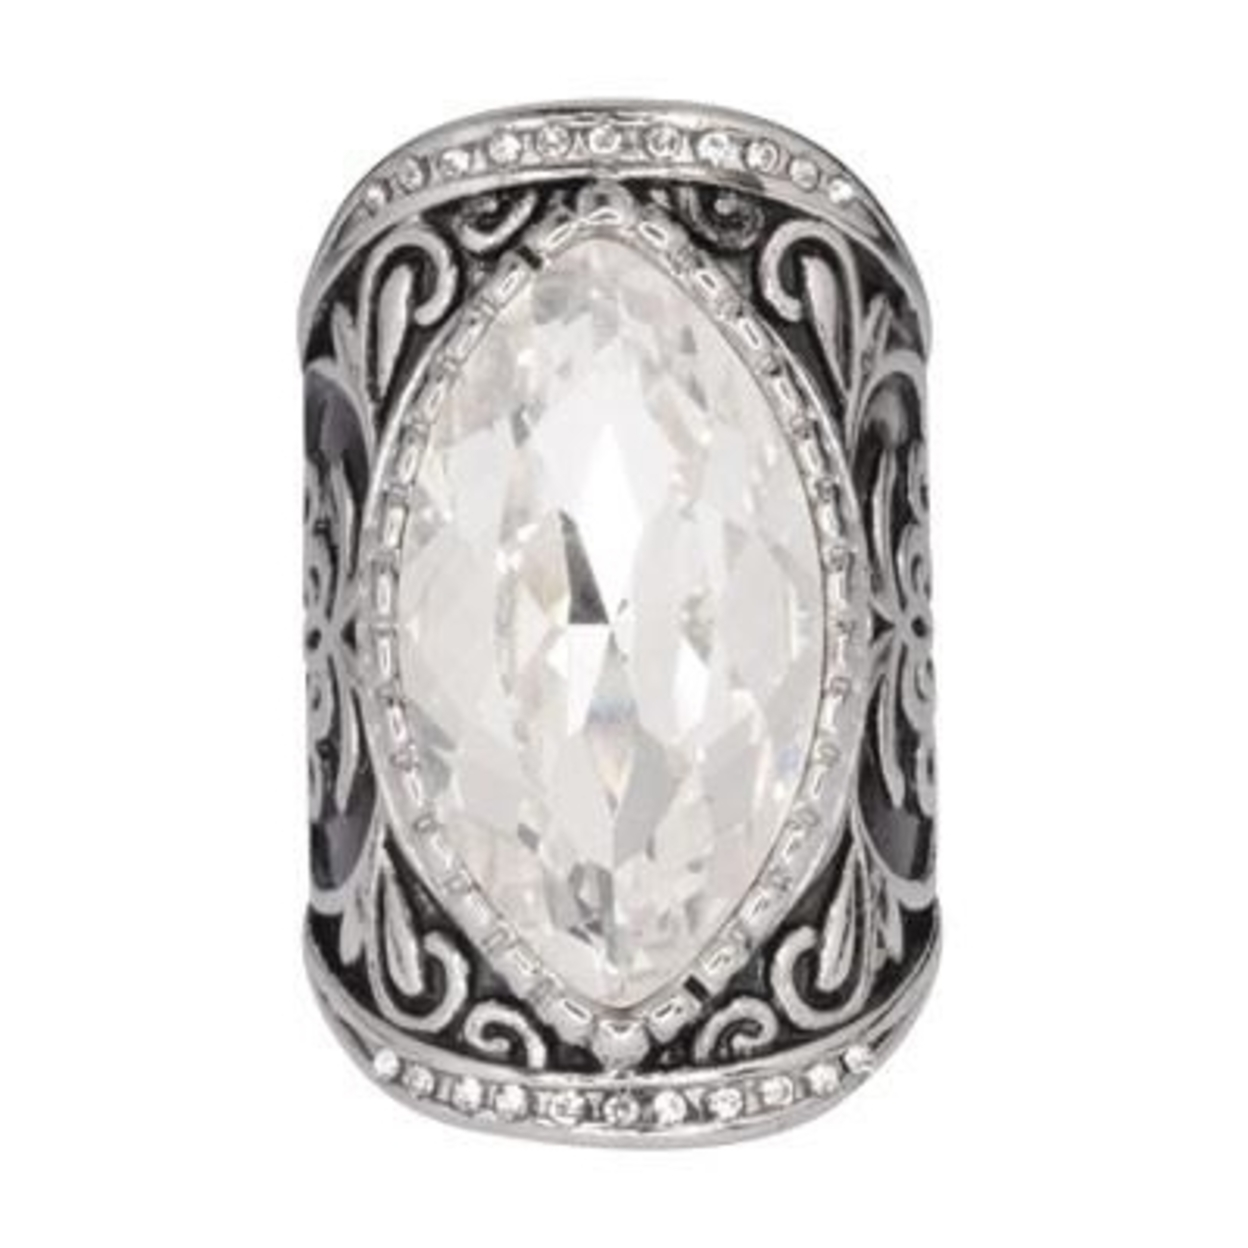 Sk1745 Ladies Big Crystal Fancy Design Ring Stainless Steel Motorcycle Jewelry Size 6-10 - 6 59d561dcc98fc405100f818e